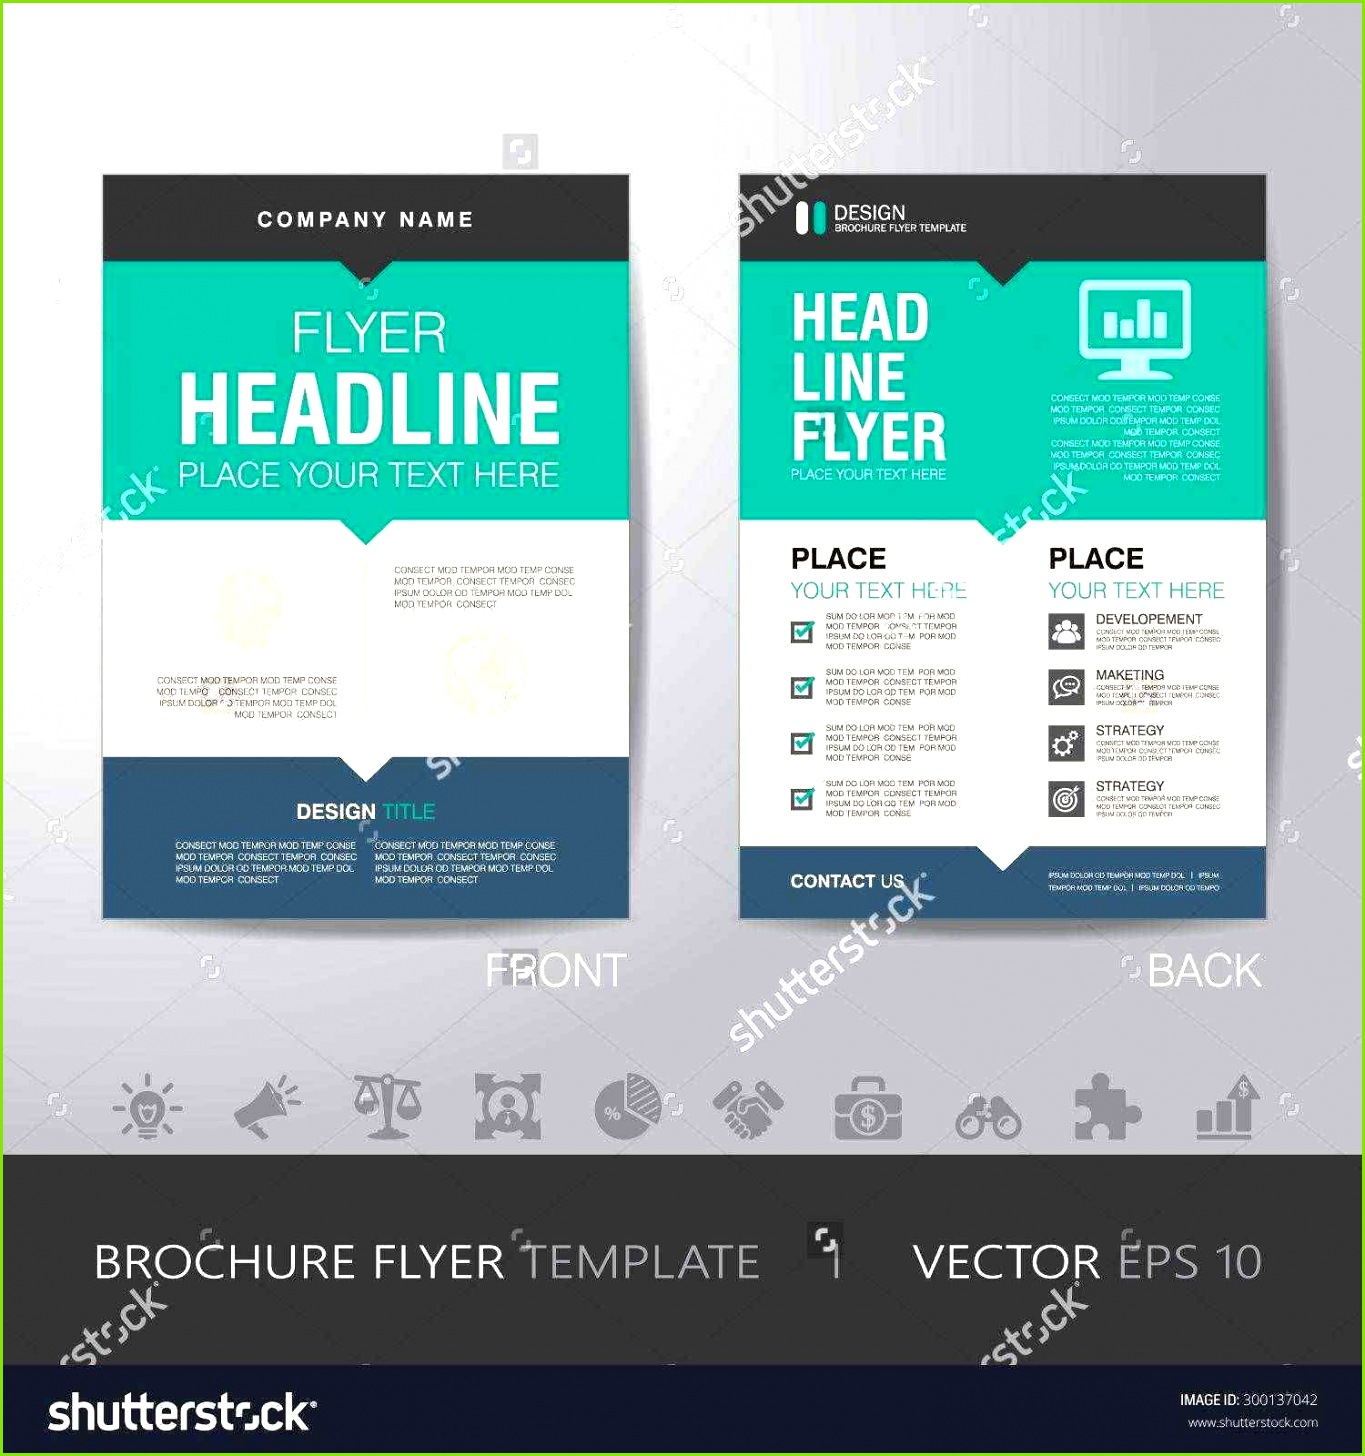 Examples Newsletter Templates Best Electronic Newsletter Templates Best Professional Emails